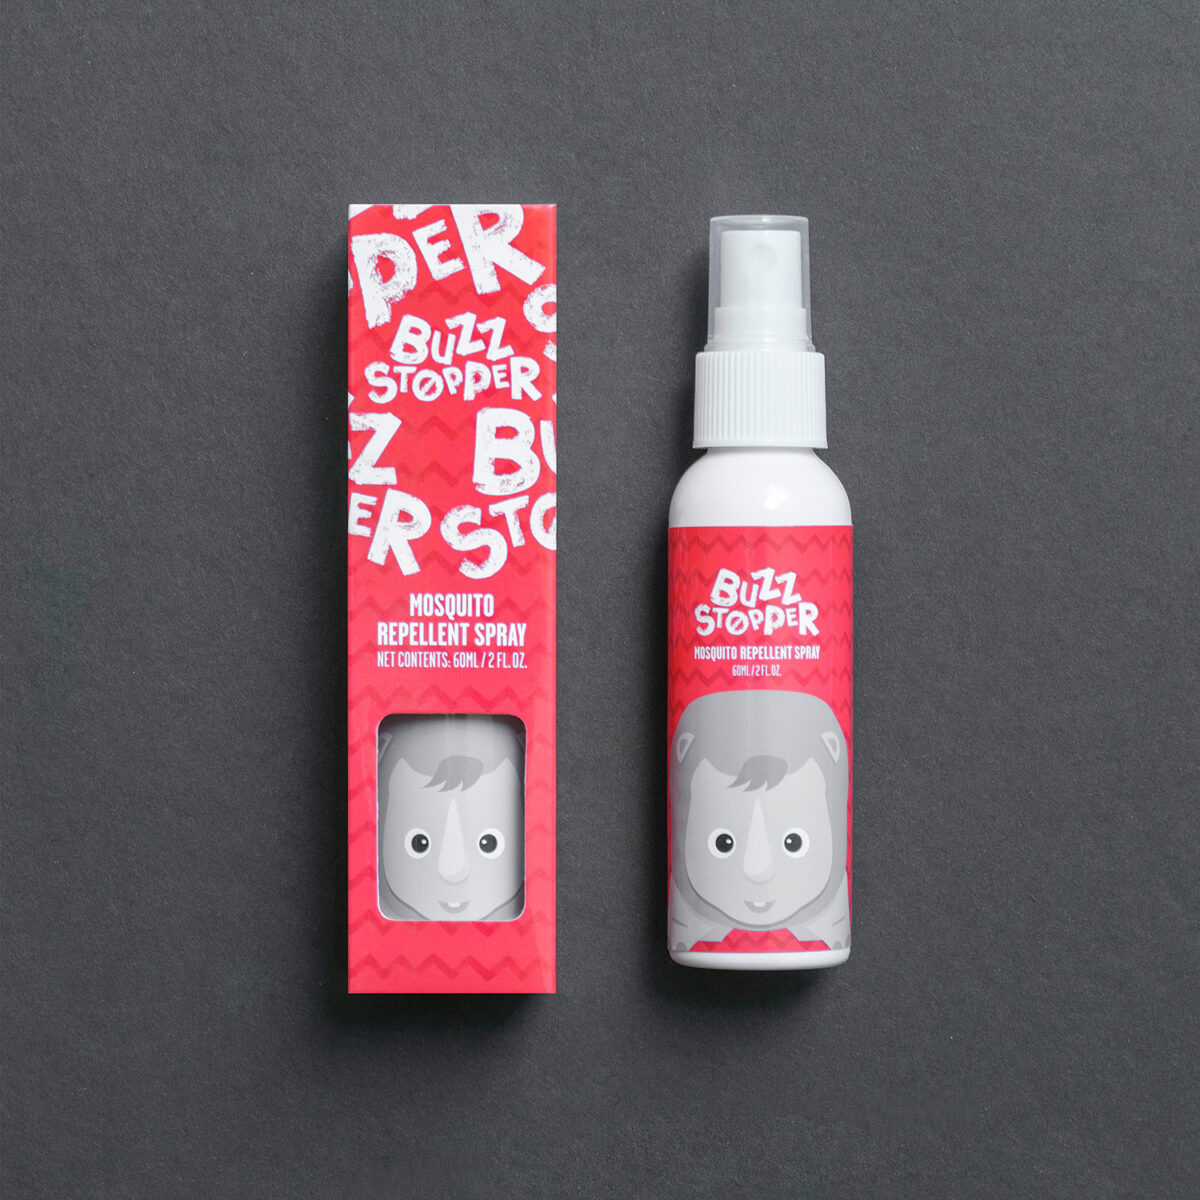 Insect Repellent Spray bottle boxes packaging  14893